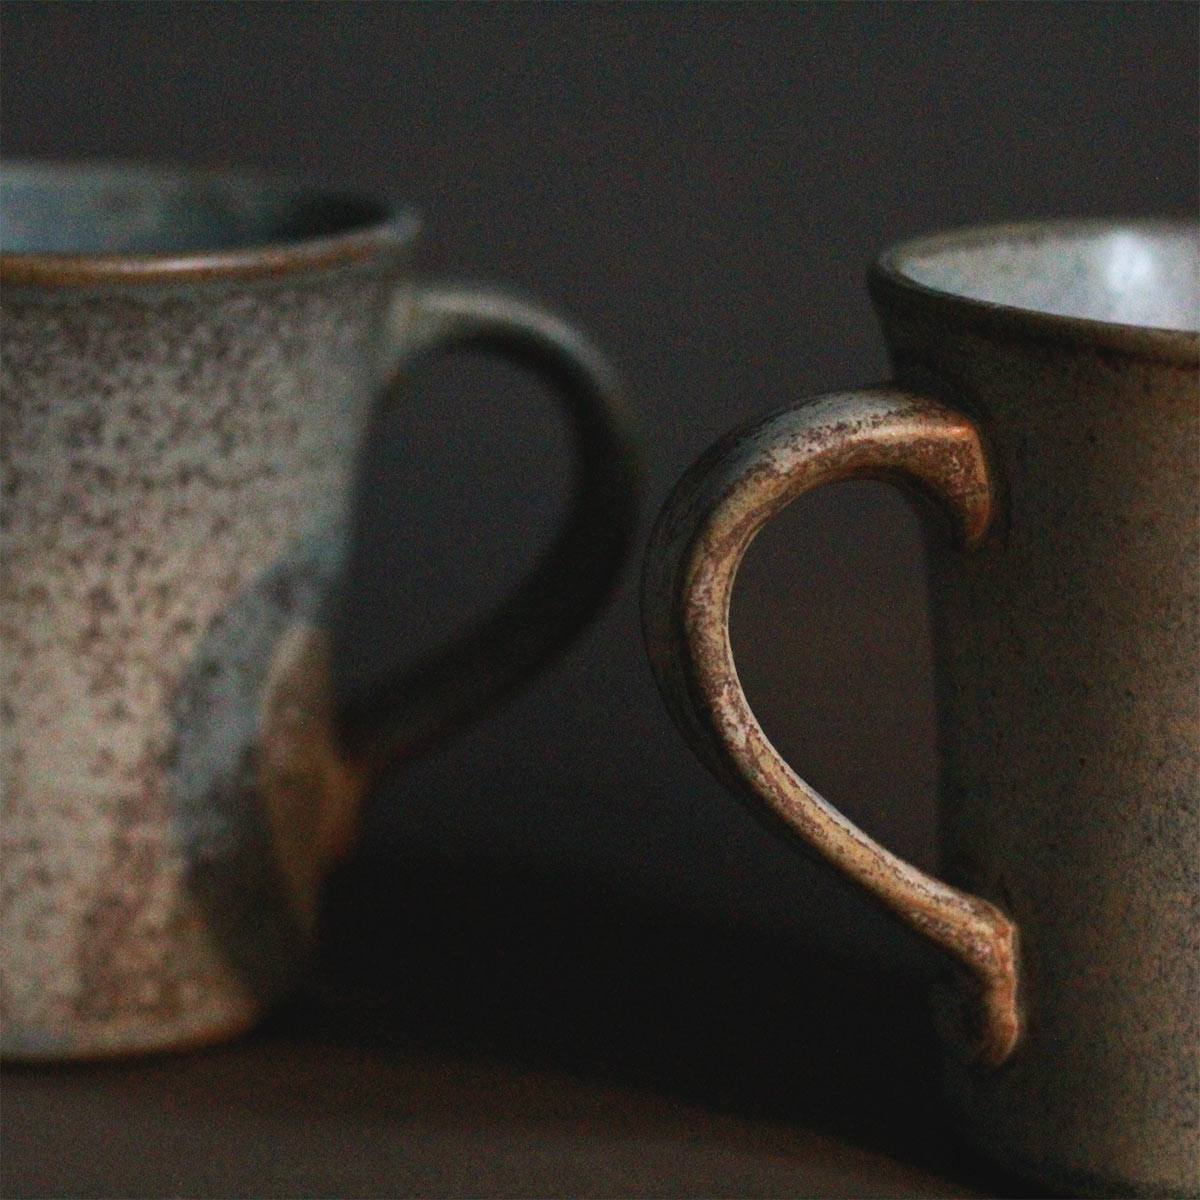 Textured Ceramic Coffee Mugs (Set of 2)